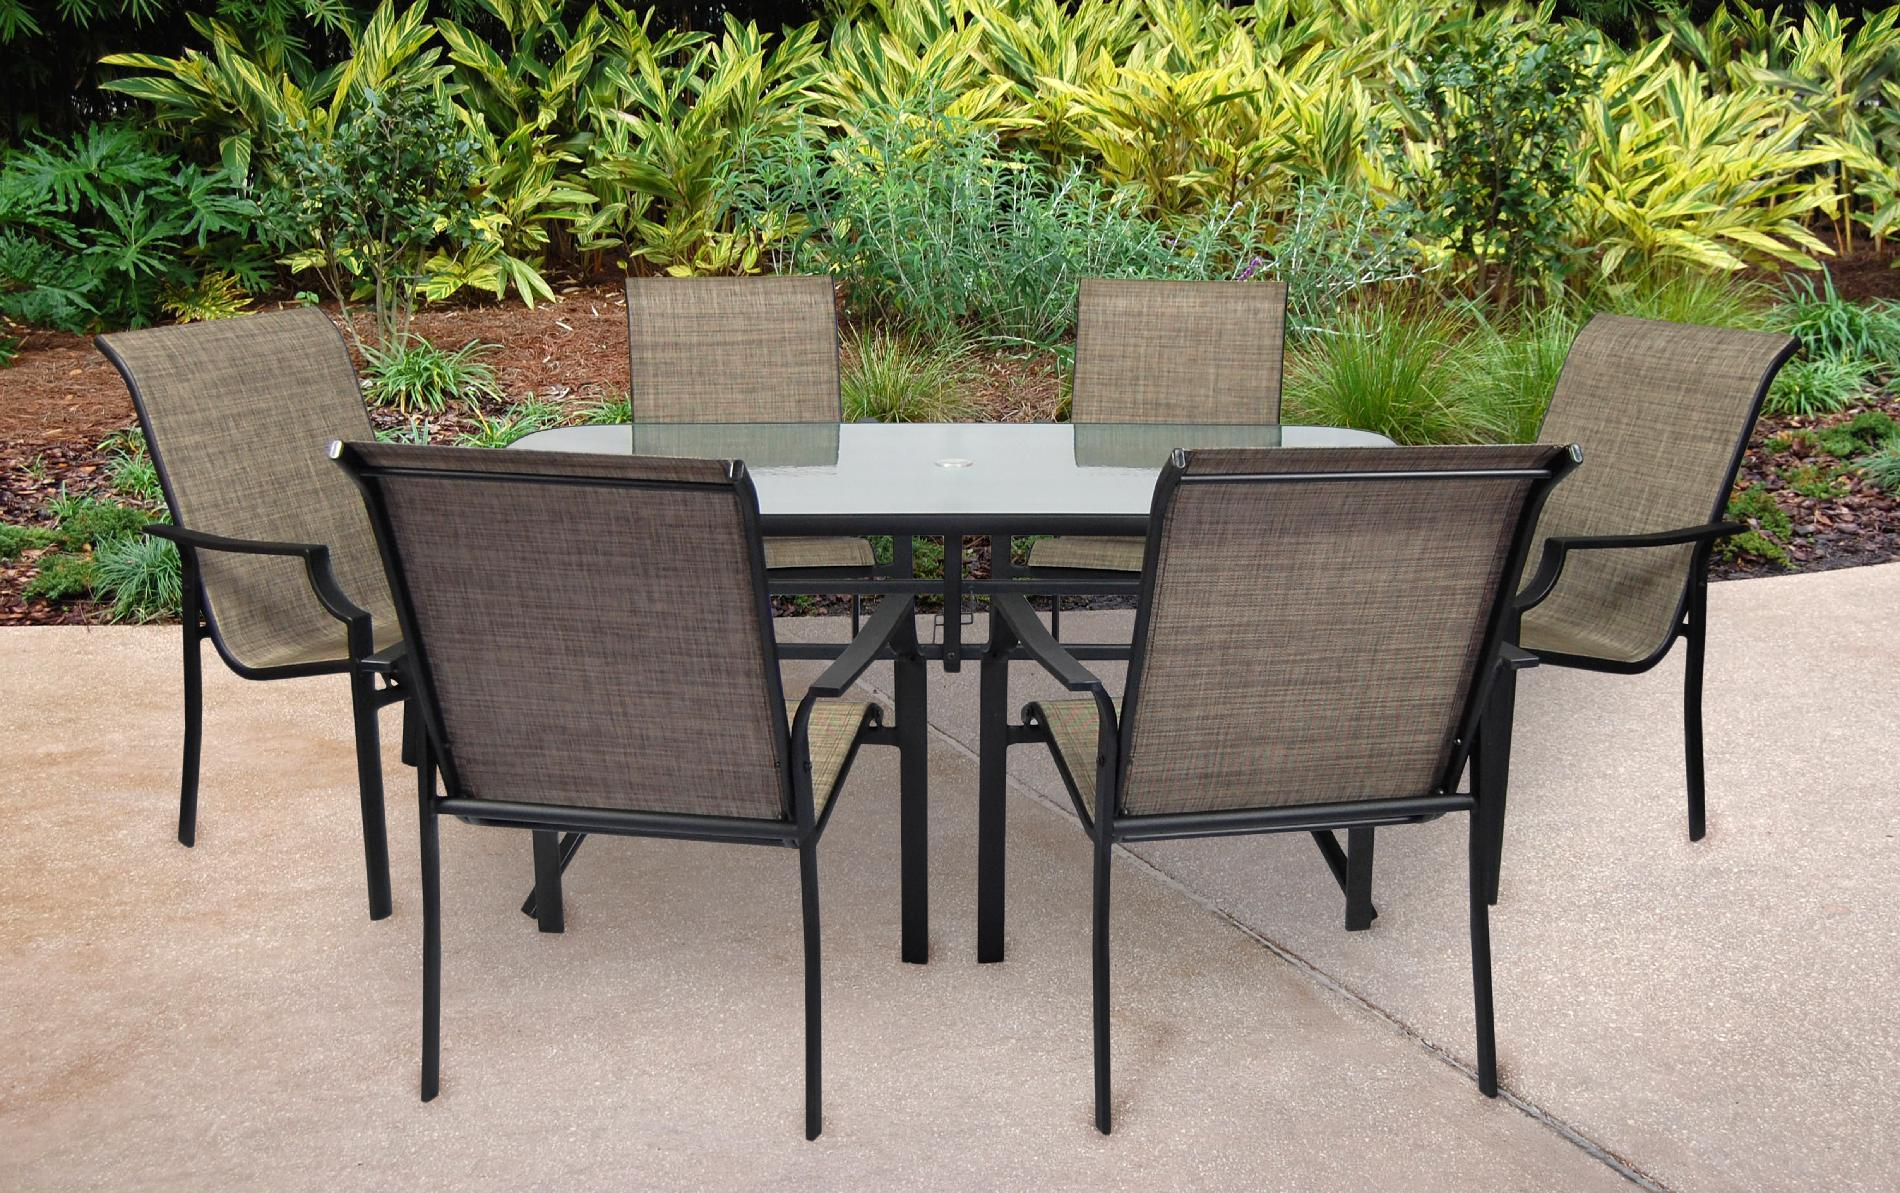 sears patio furniture dining sets SS-355-2SET - Fairfield 7 pc Patio Dining Set | Sears Outlet